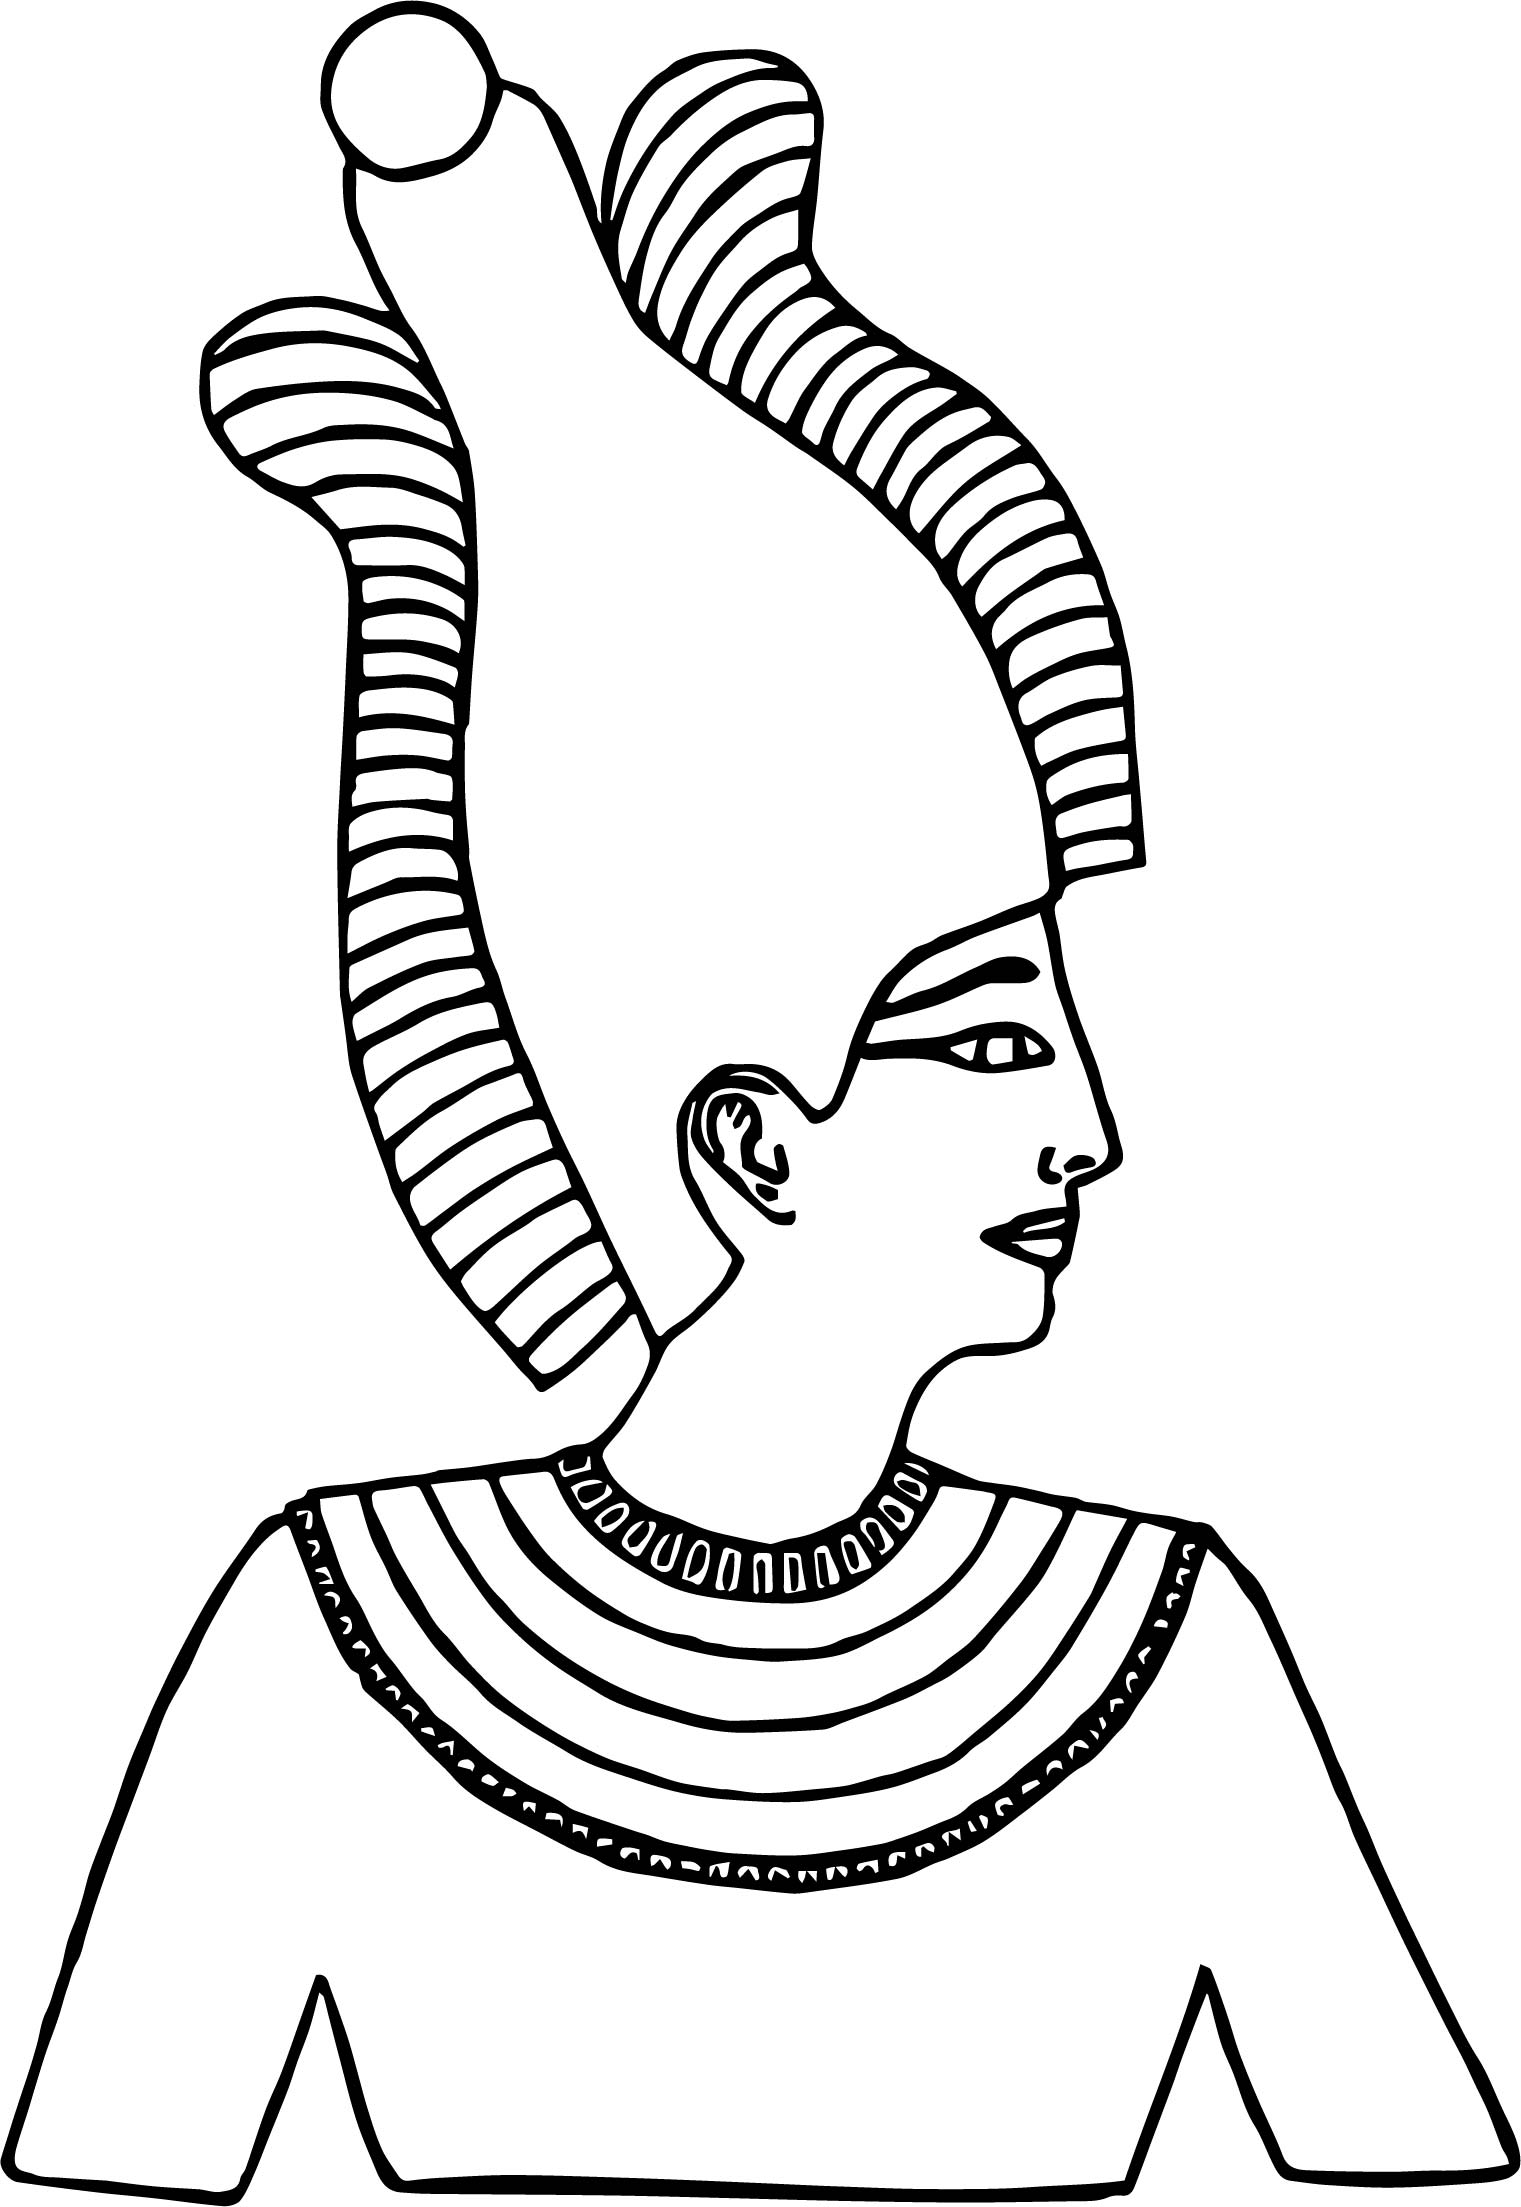 atef crown coloring page - Crown Coloring Page